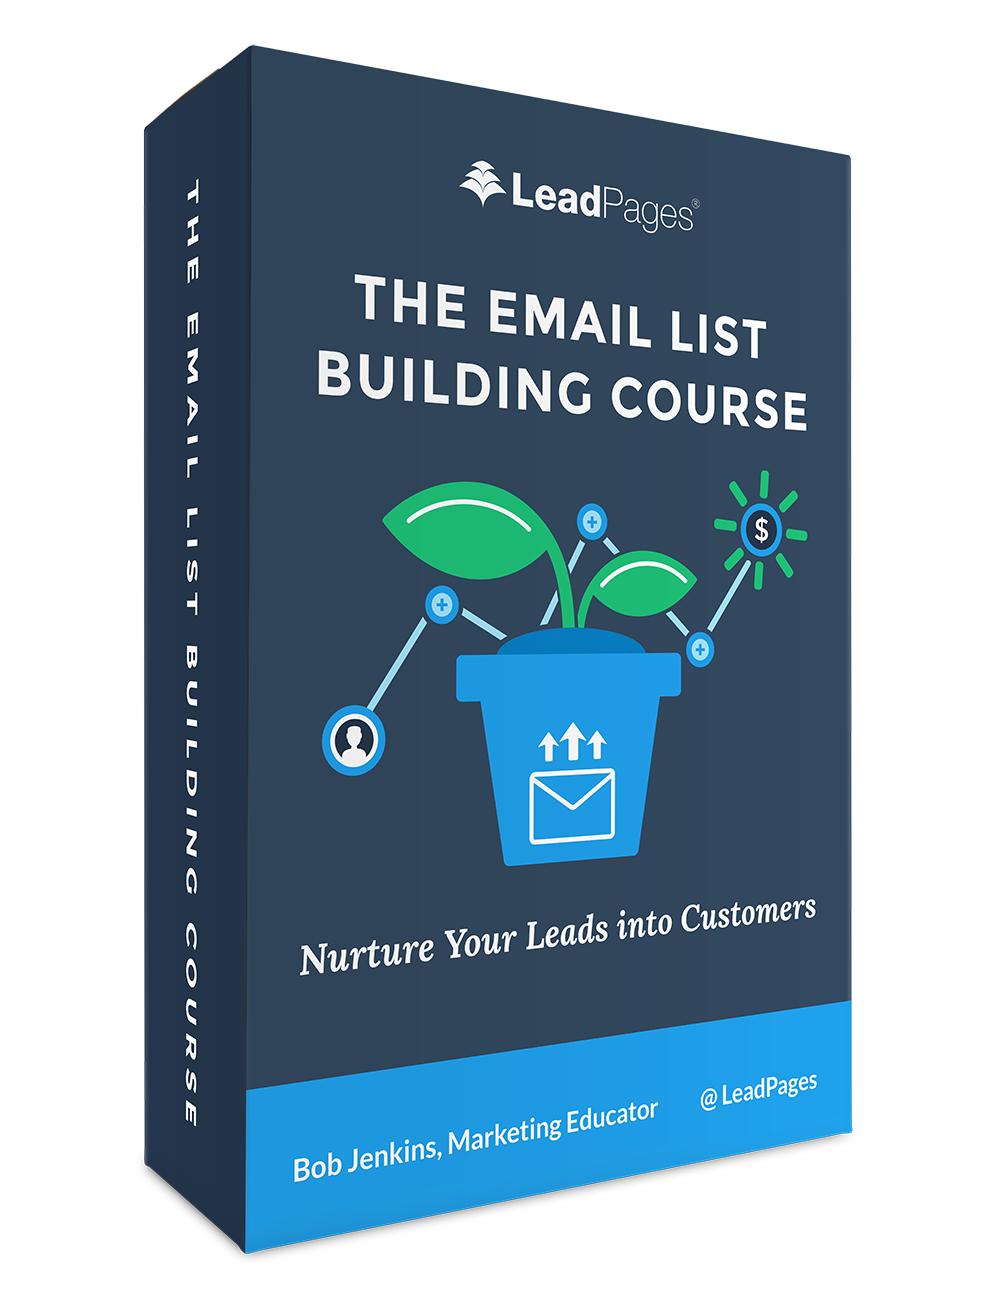 Download the Leadpages email list building course now